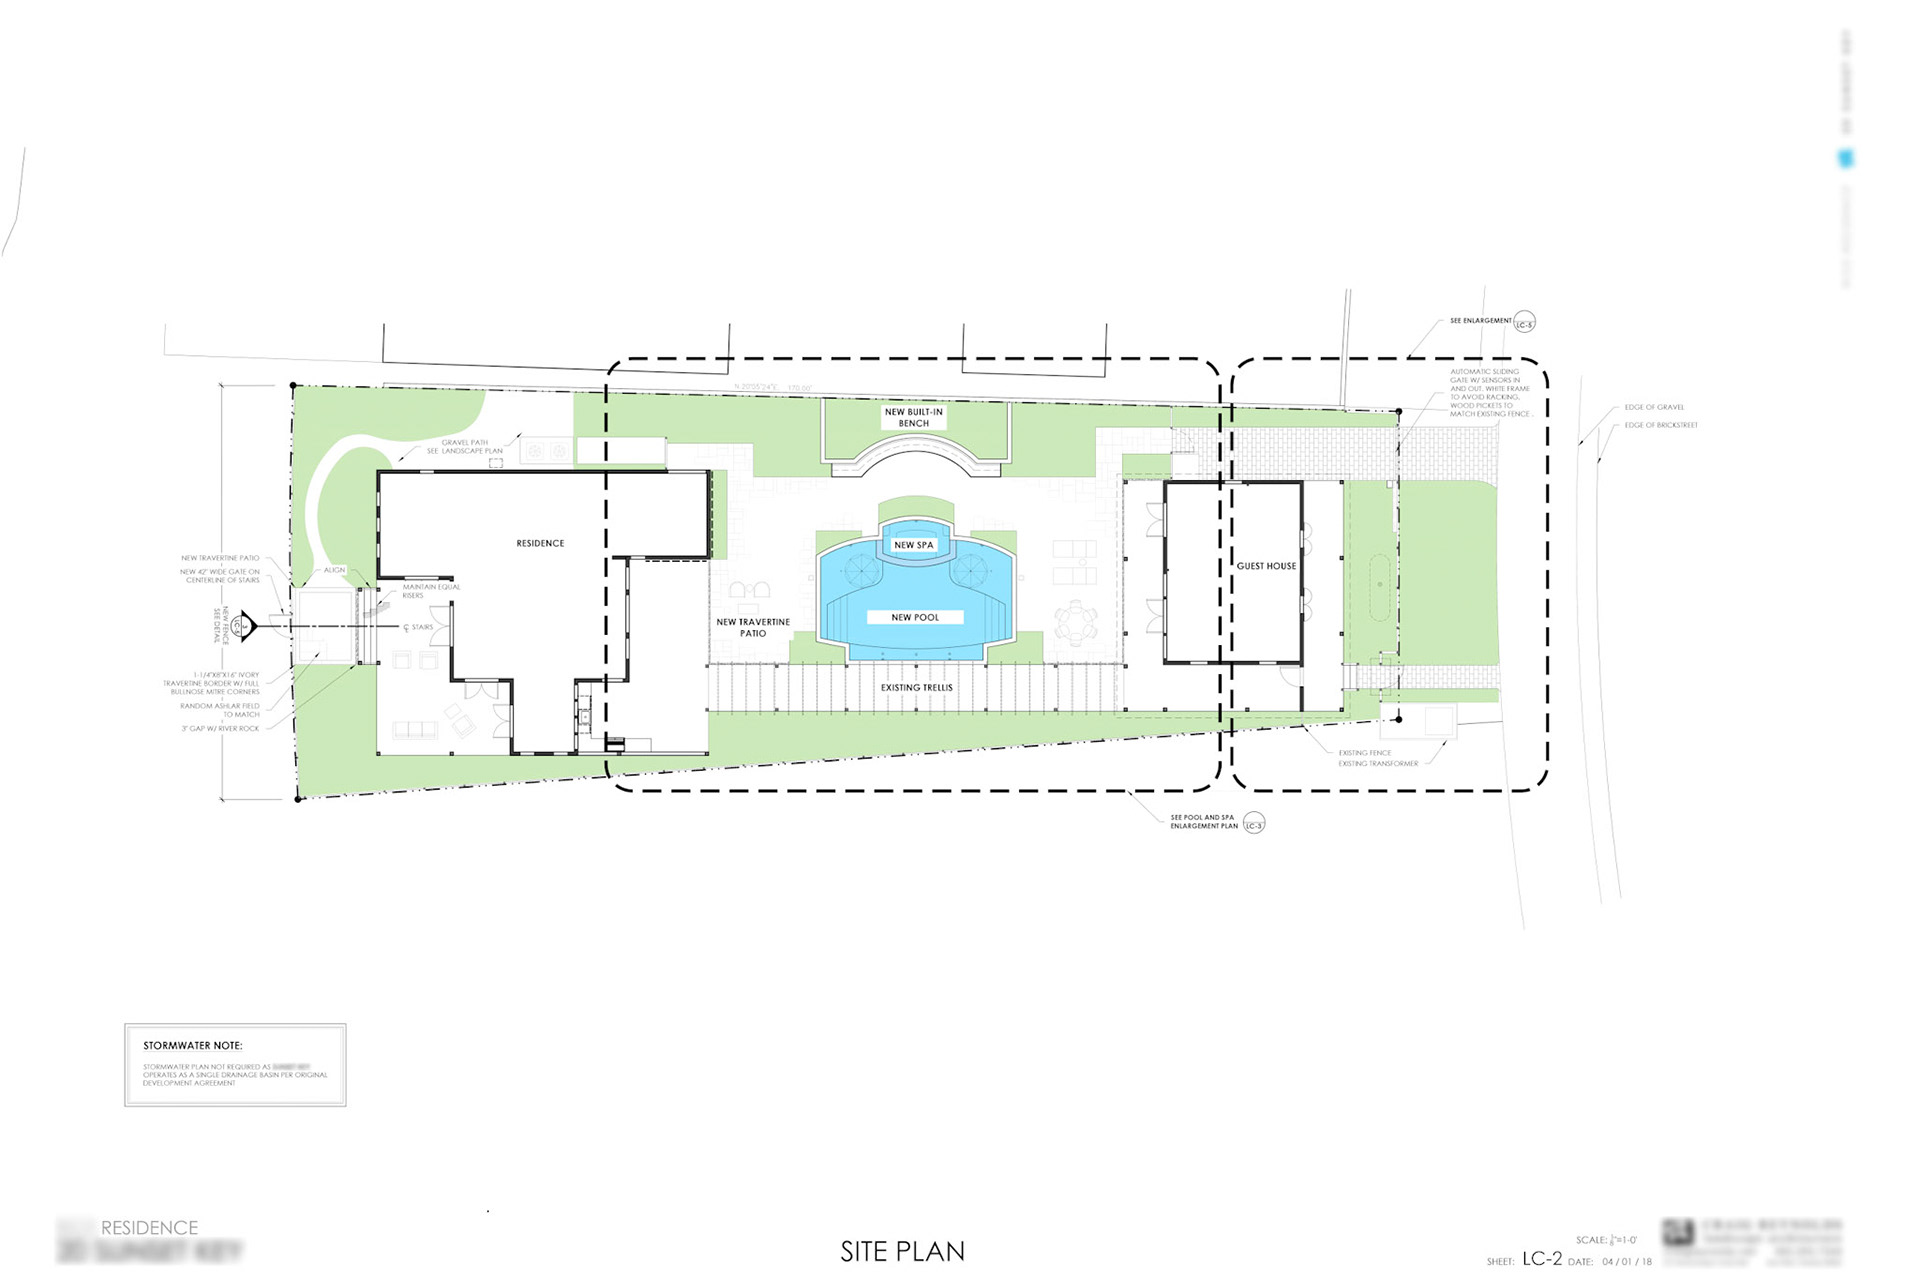 Studioplaats Support Services Driveway Gate Plan View Diagrams Drawings Electric Layouts We Take Rough Sketches And Help You Turn Them Into Professional Looking Documents Images Designs Property Of Groundswell Llc